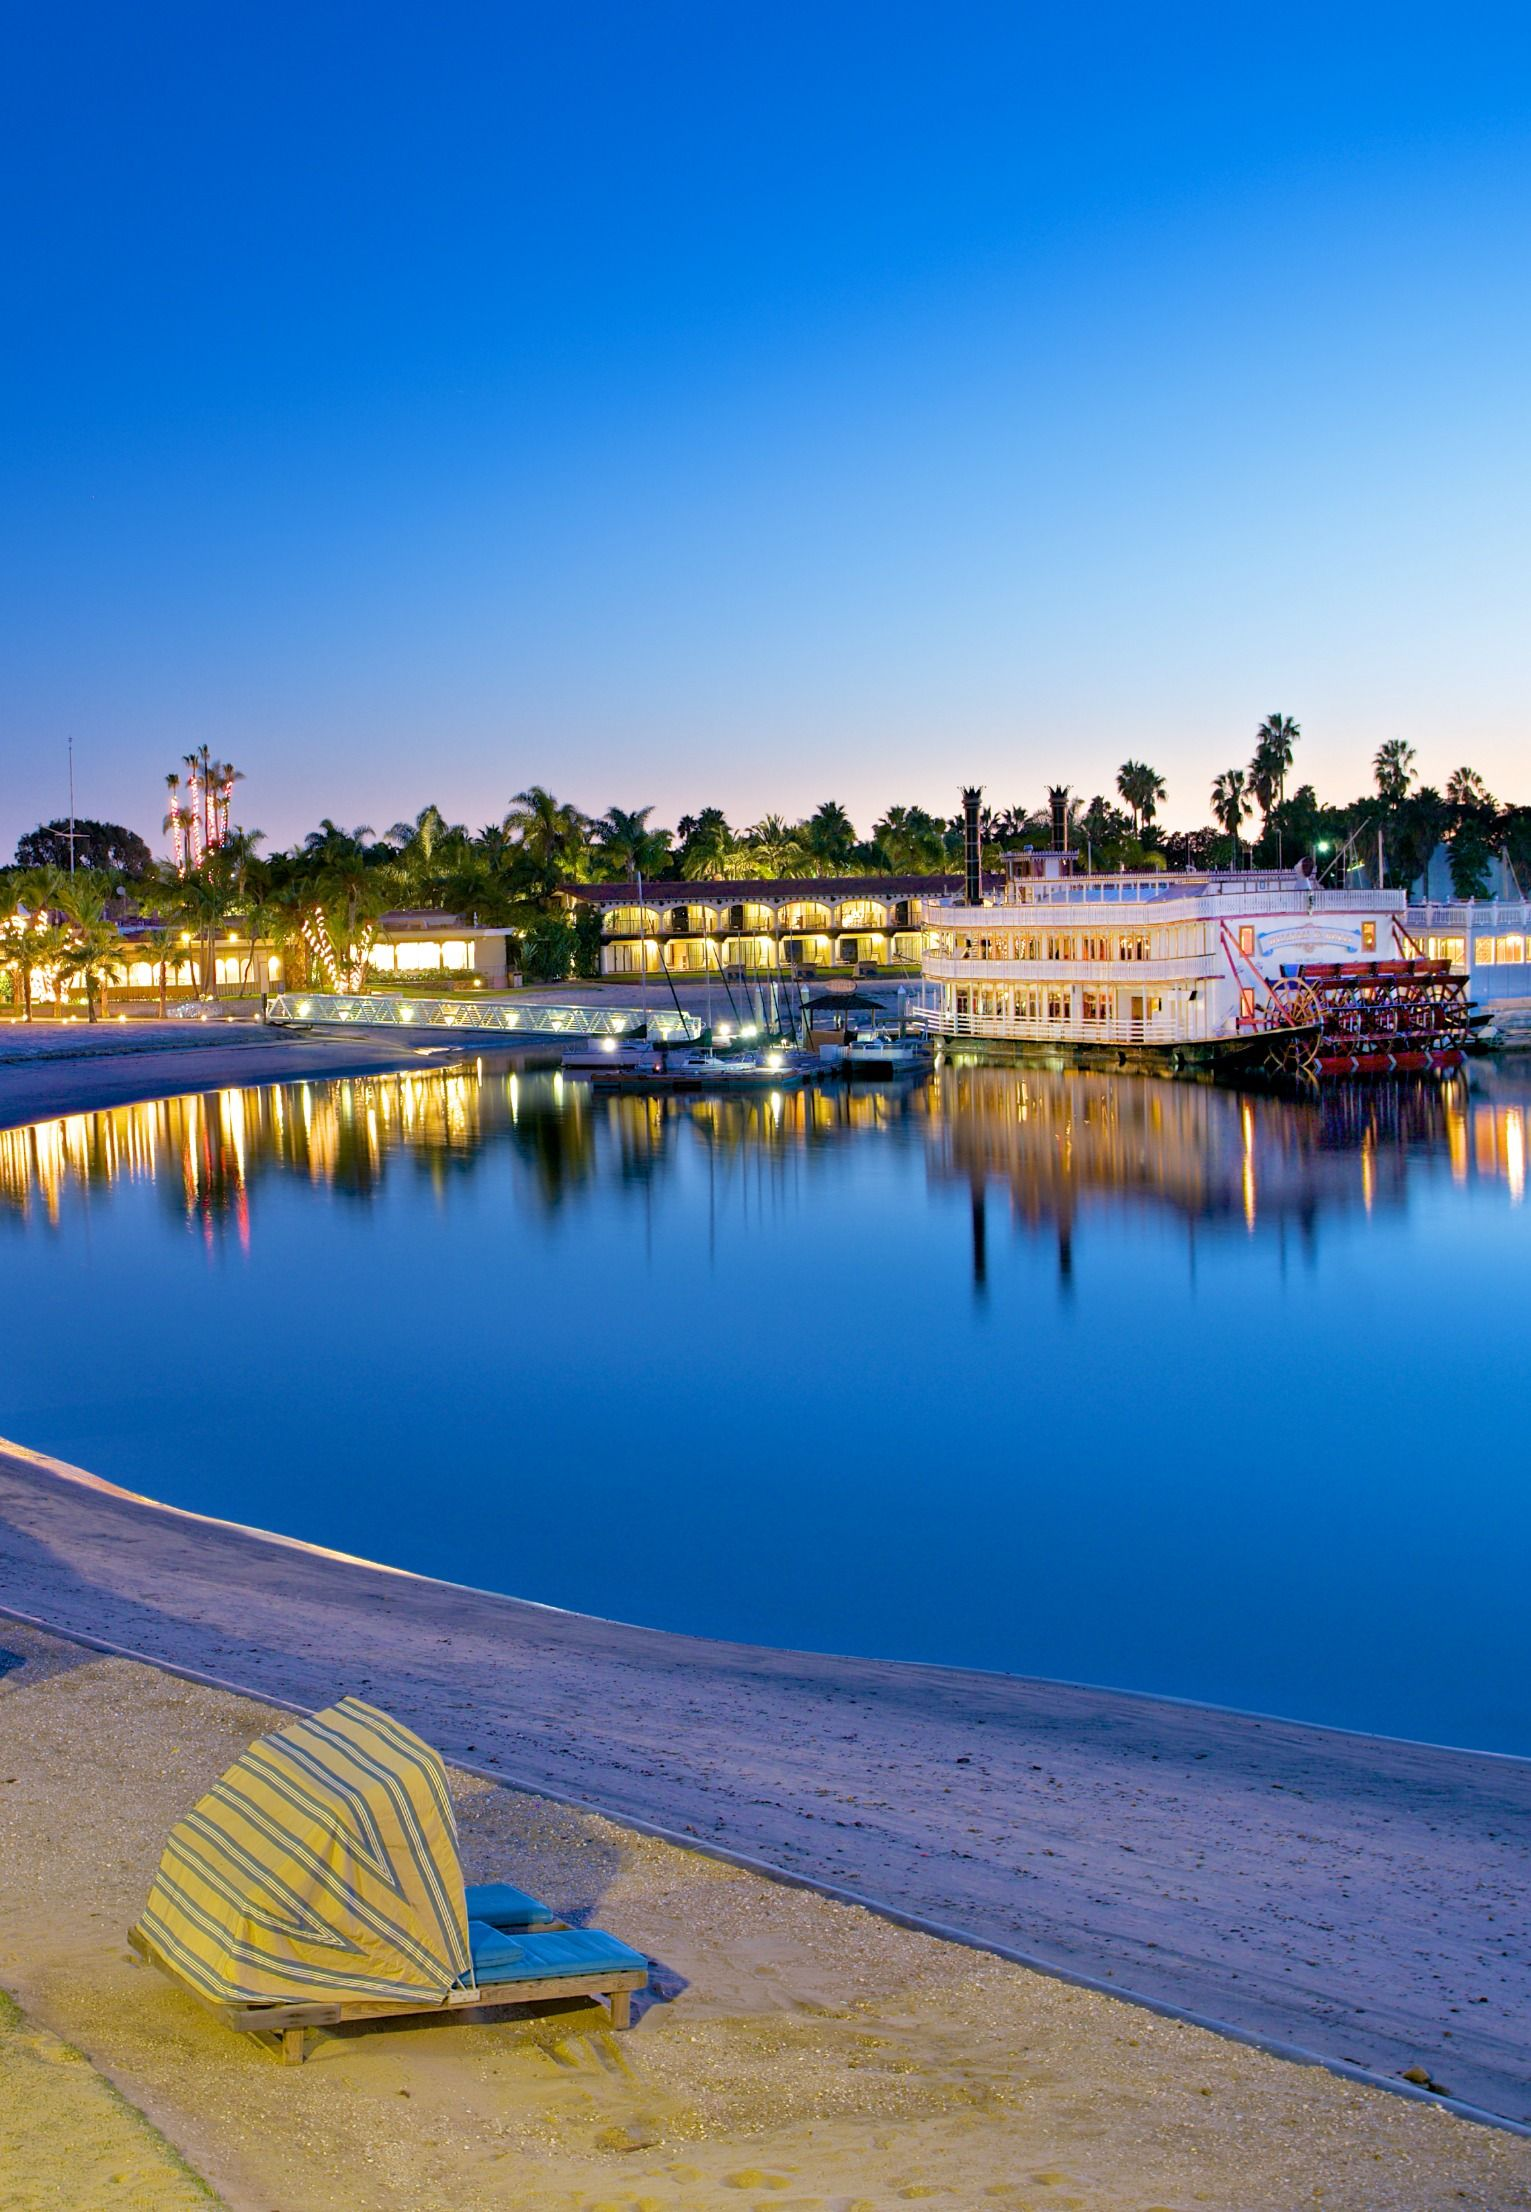 8 Best Mission Beach Hotels And Mission Bay Hotels (With